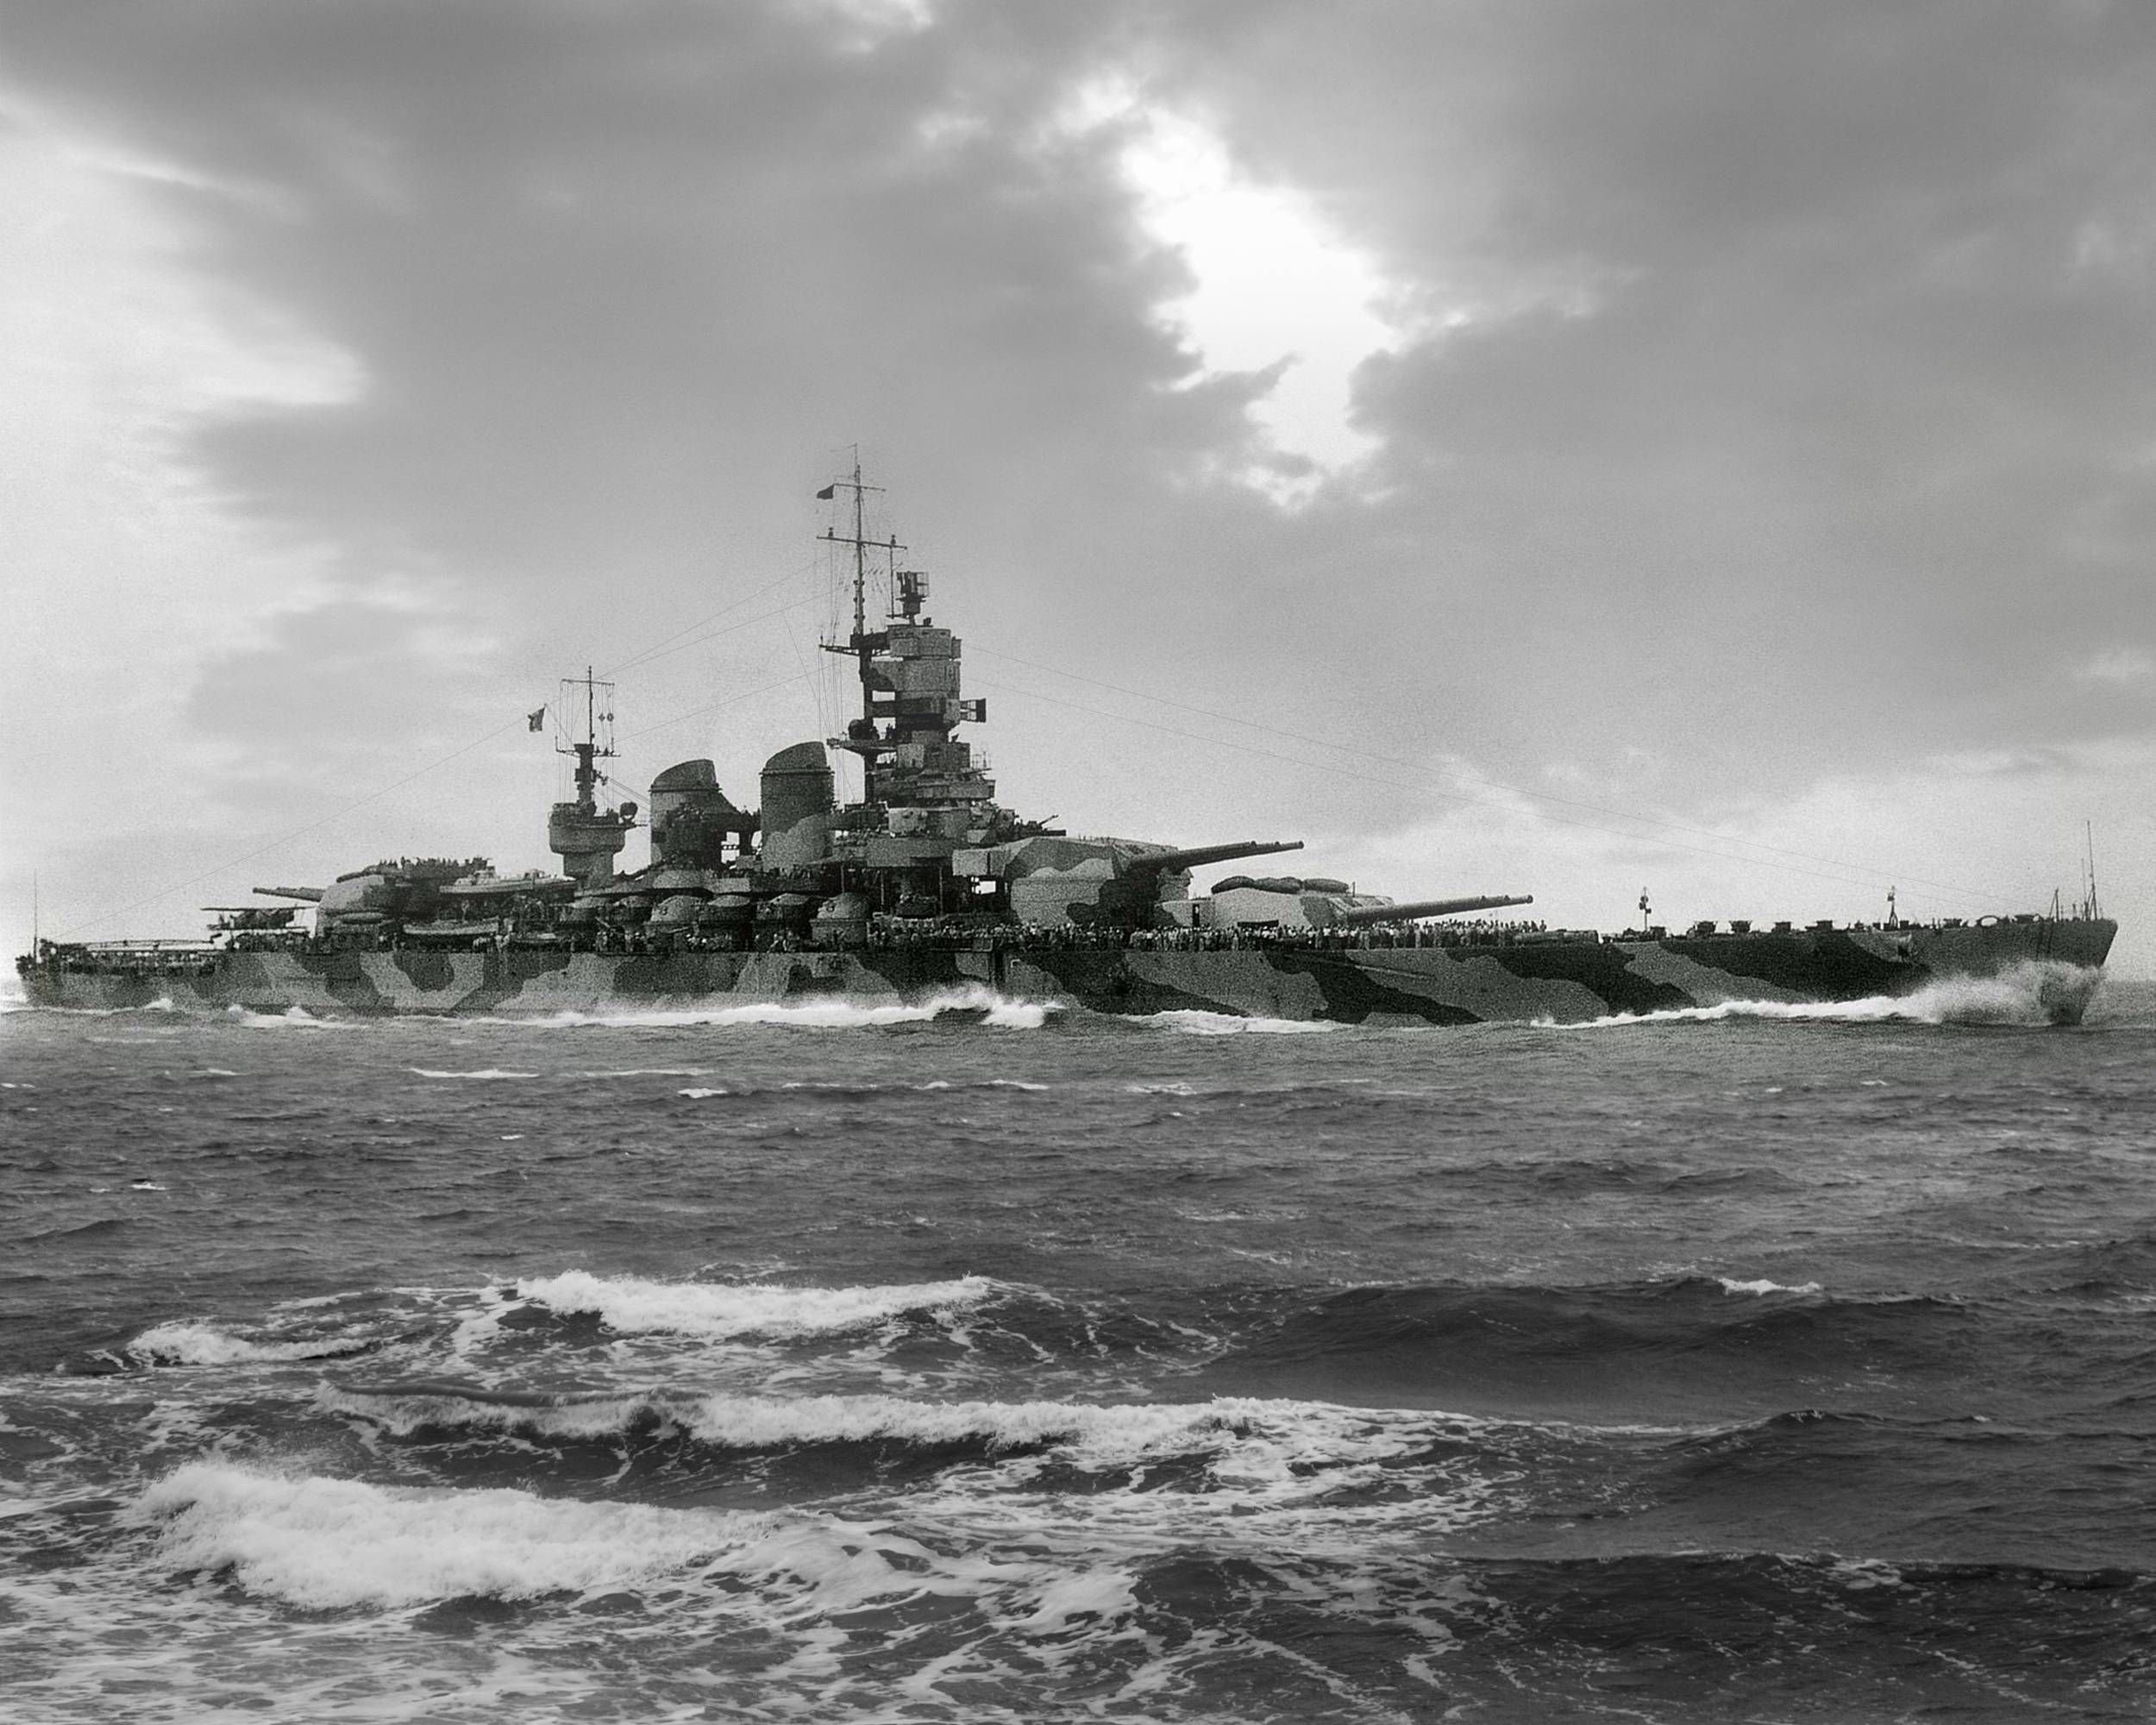 Wwii italy navy battleship roma 1943 plastic model images list - Italian Battleship Littorio Was The Lead Ship Of Her Class Served In The